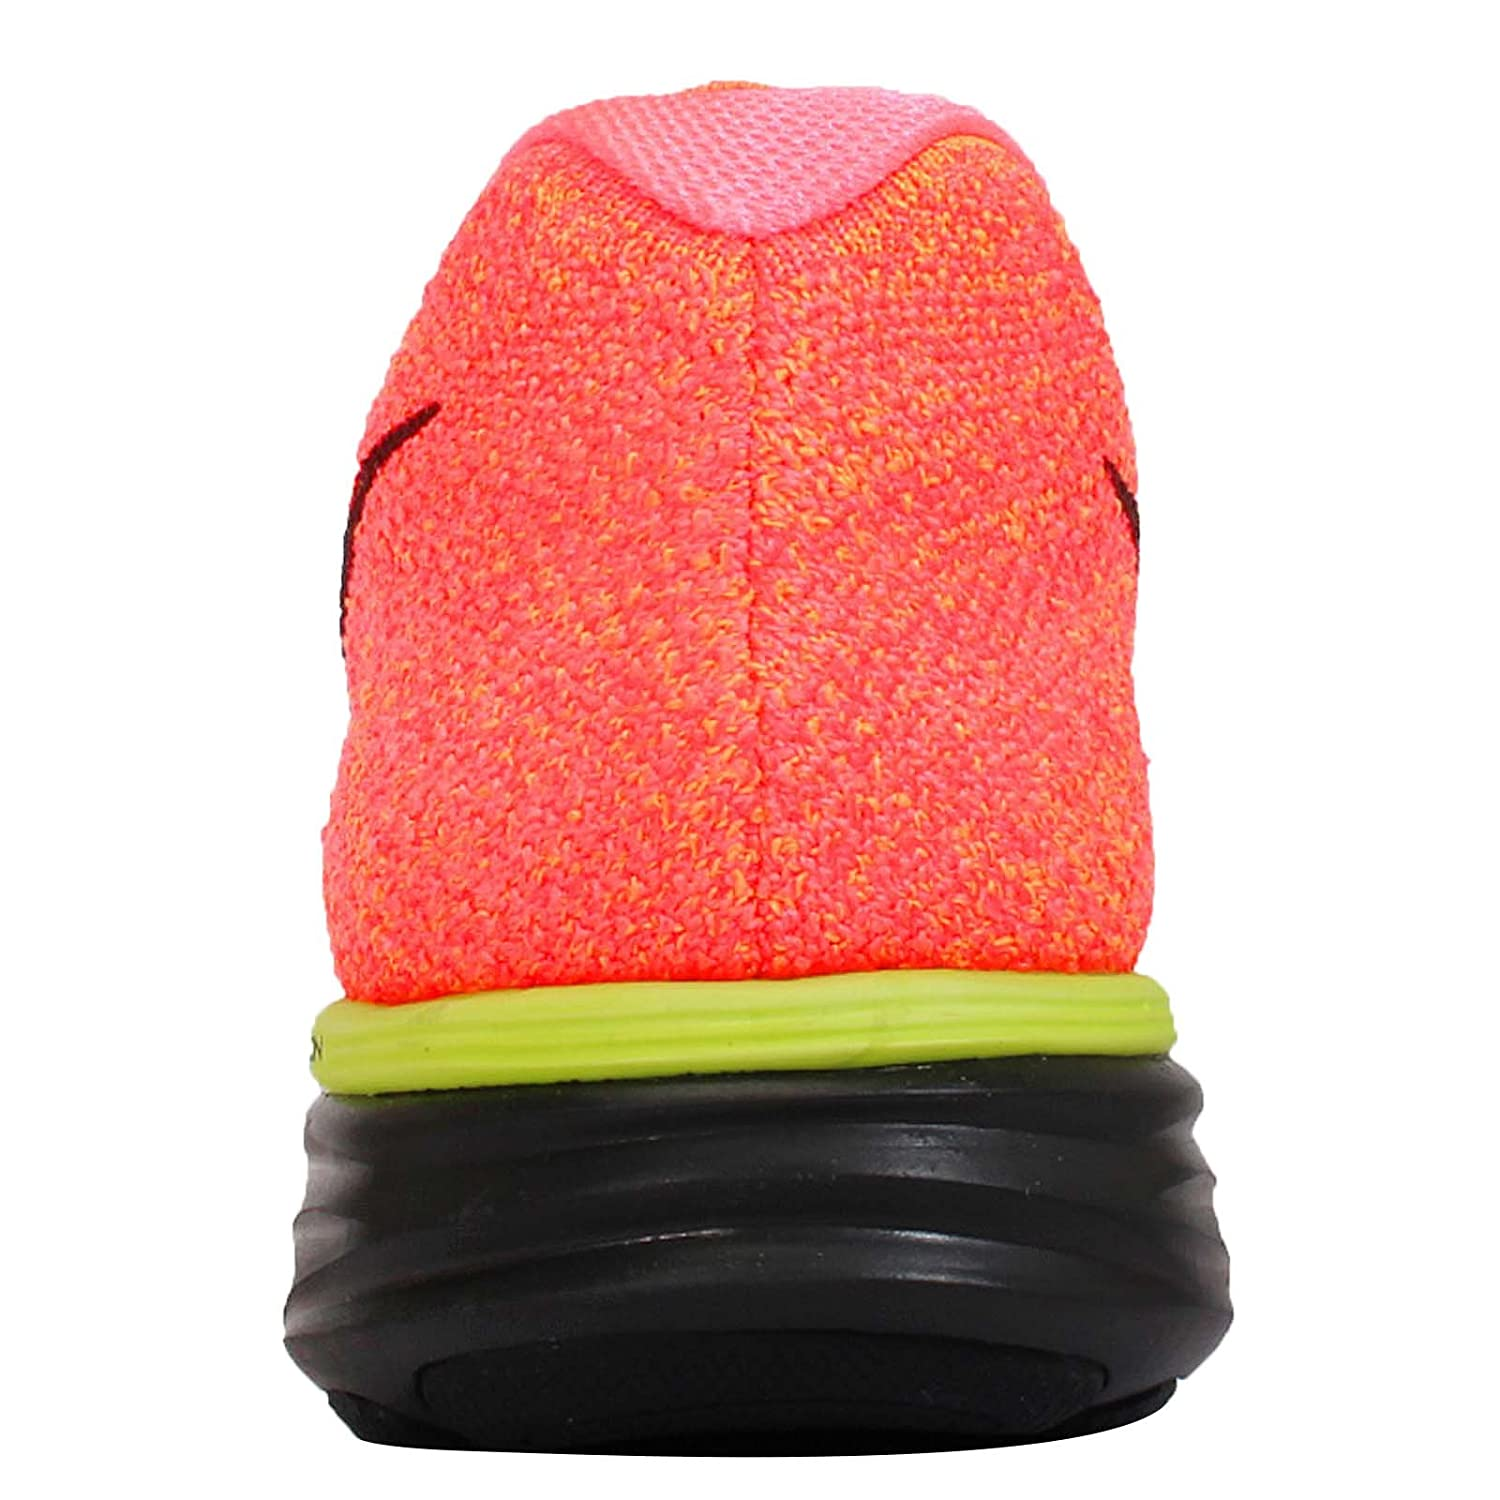 sports shoes 0086d a7985 ... greece amazon nike flyknit lunar 3 mens hot lava black volt laser  orange running sneakers shoes ...